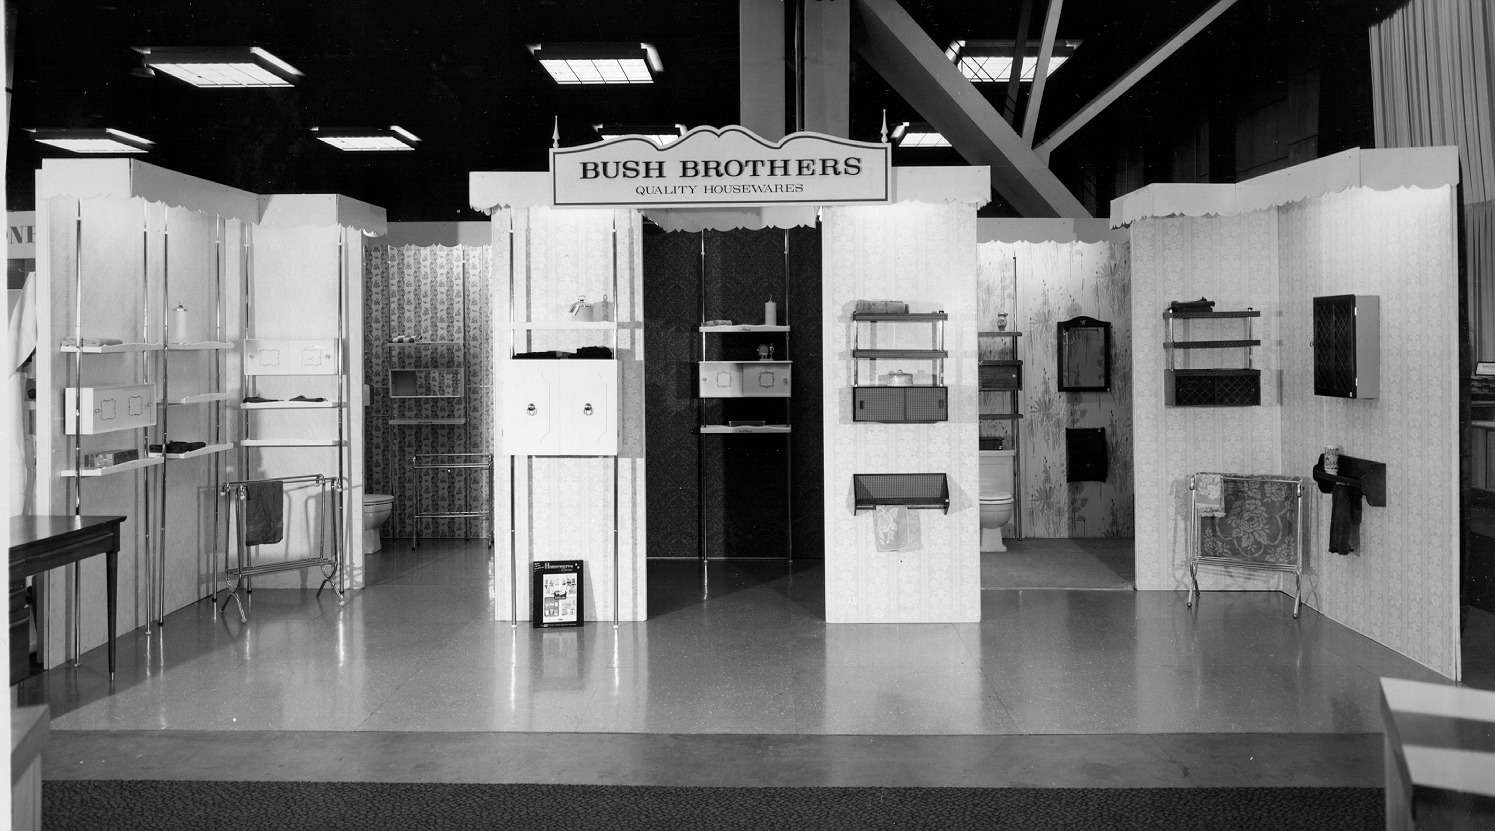 Bush Brothers Products Corporation